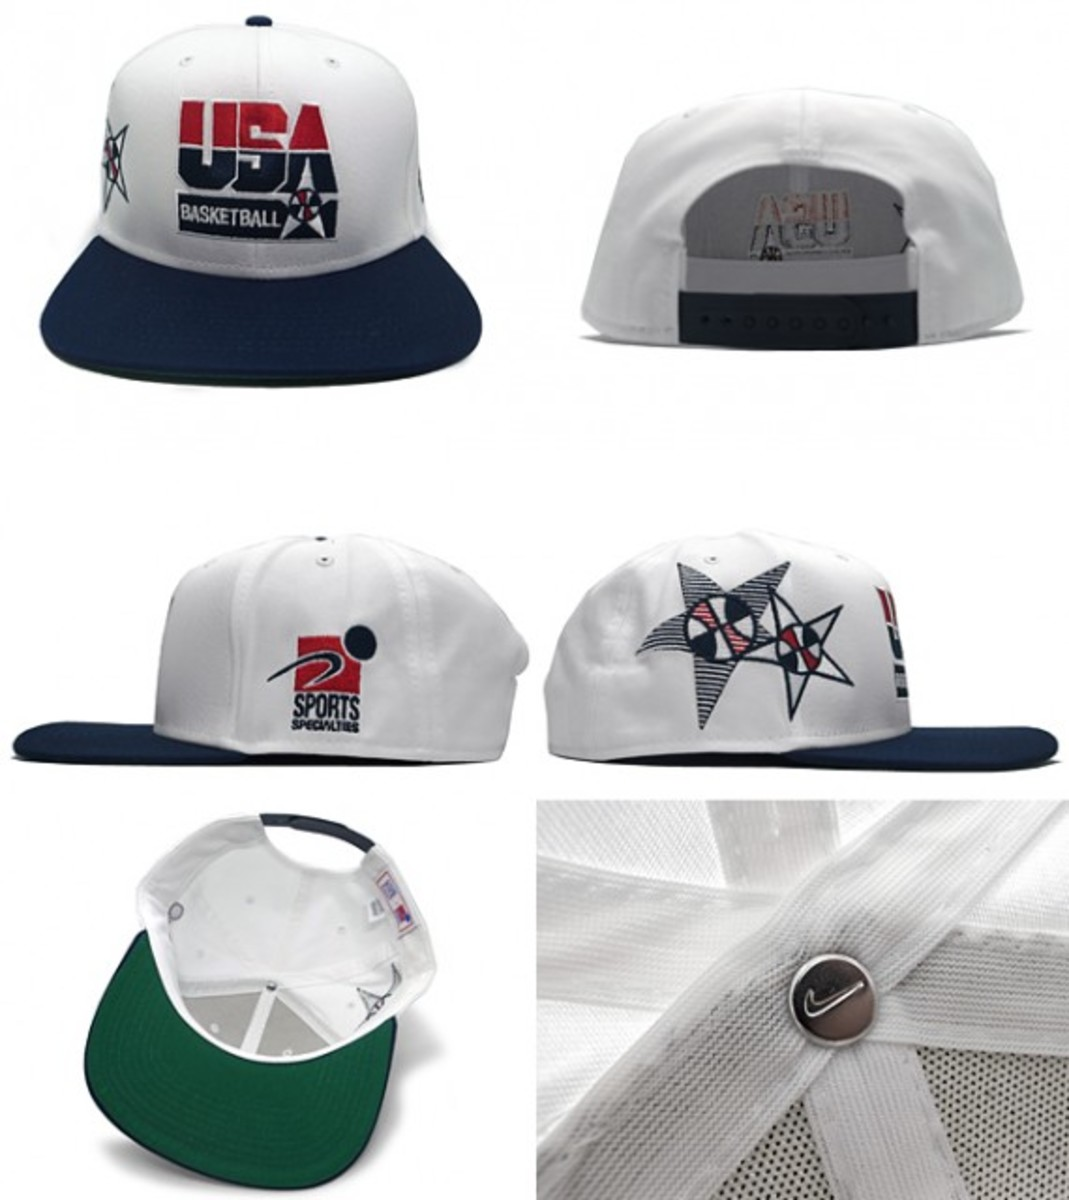 nike-true--usa-basketball-olympics-snapback-caps-02